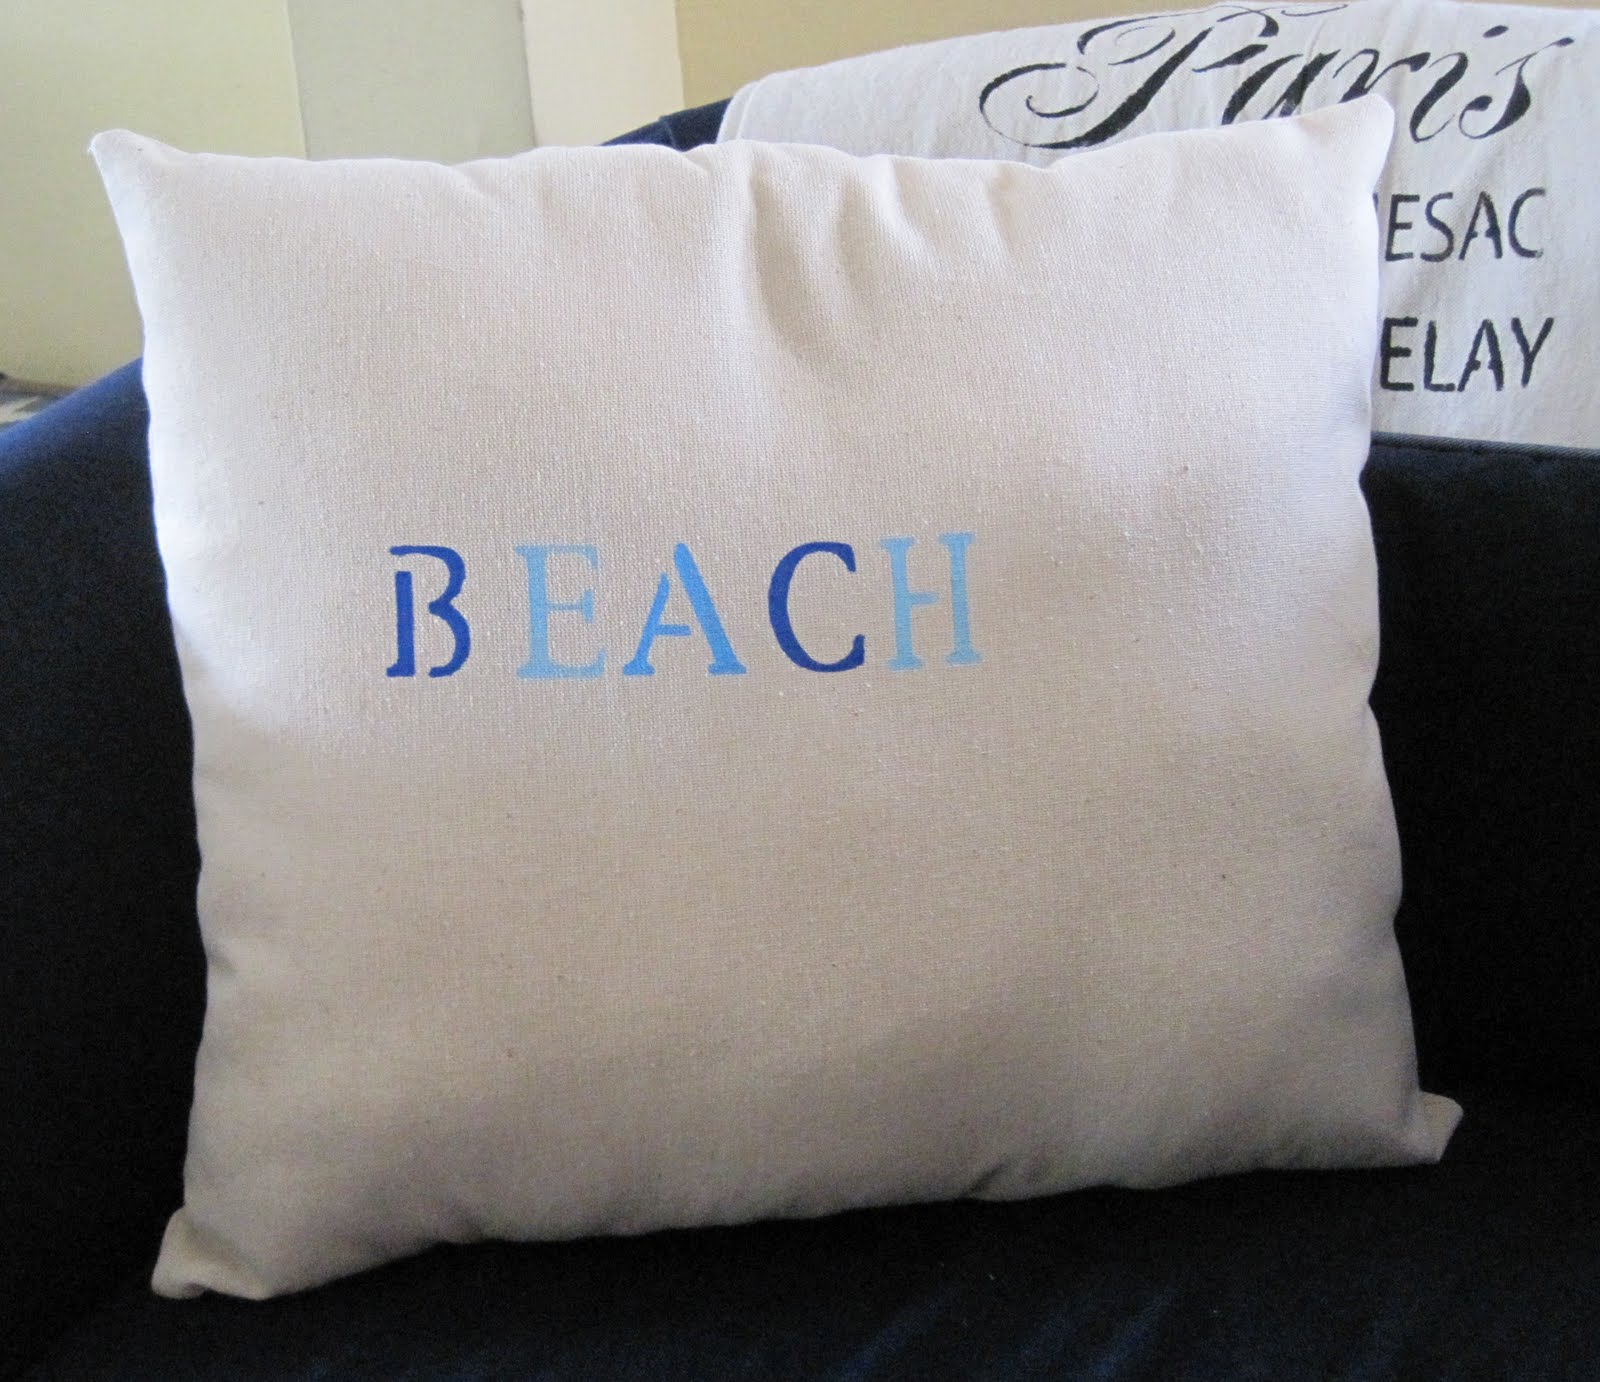 info beach cases towel energokarta trailer covers with pillows themed throw australia pillow